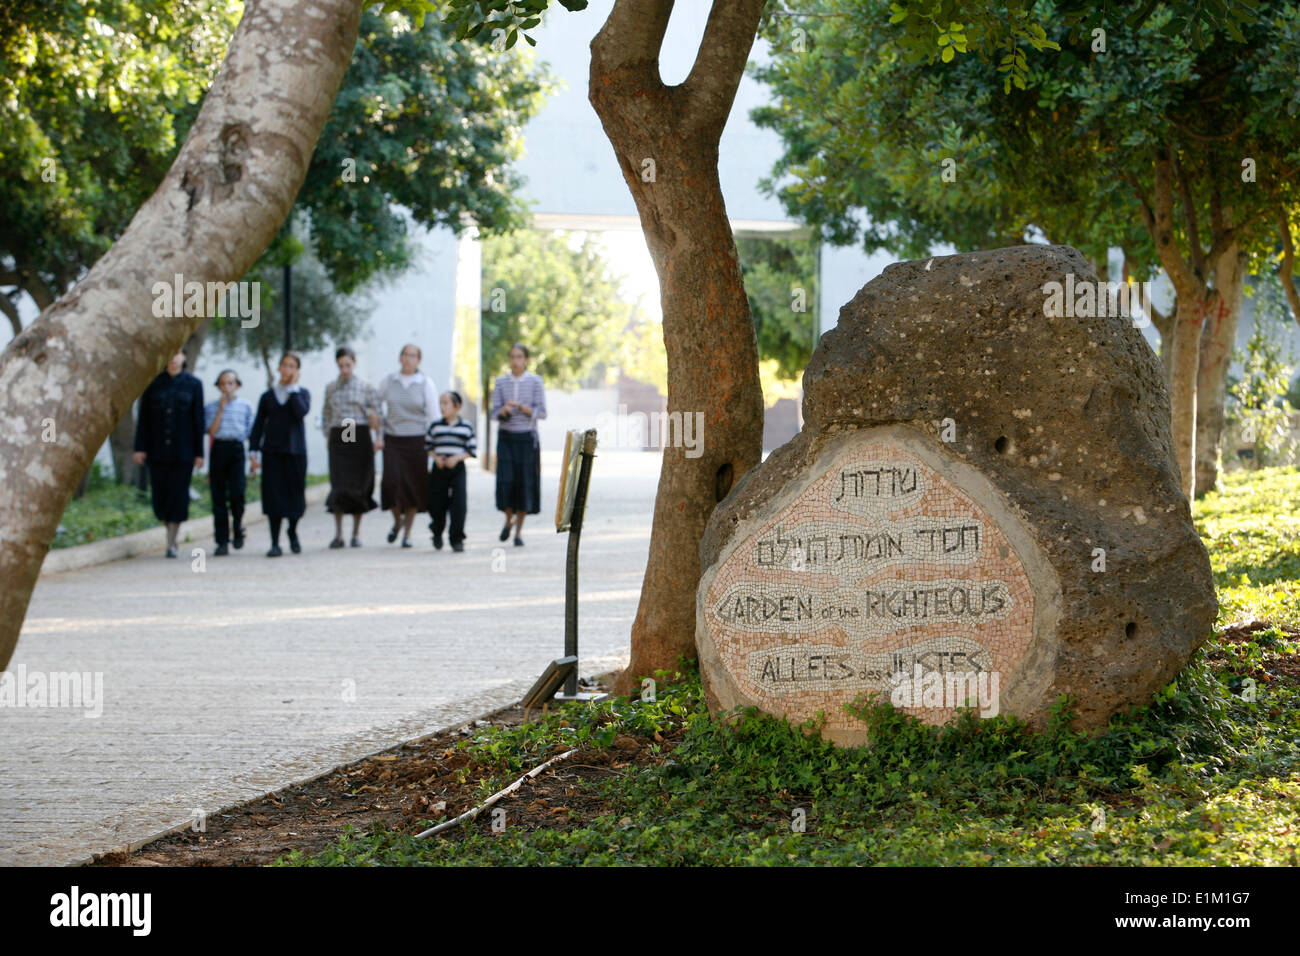 Garden of the righteous at Yad Vashem Holocaust Memorial Museum. - Stock Image